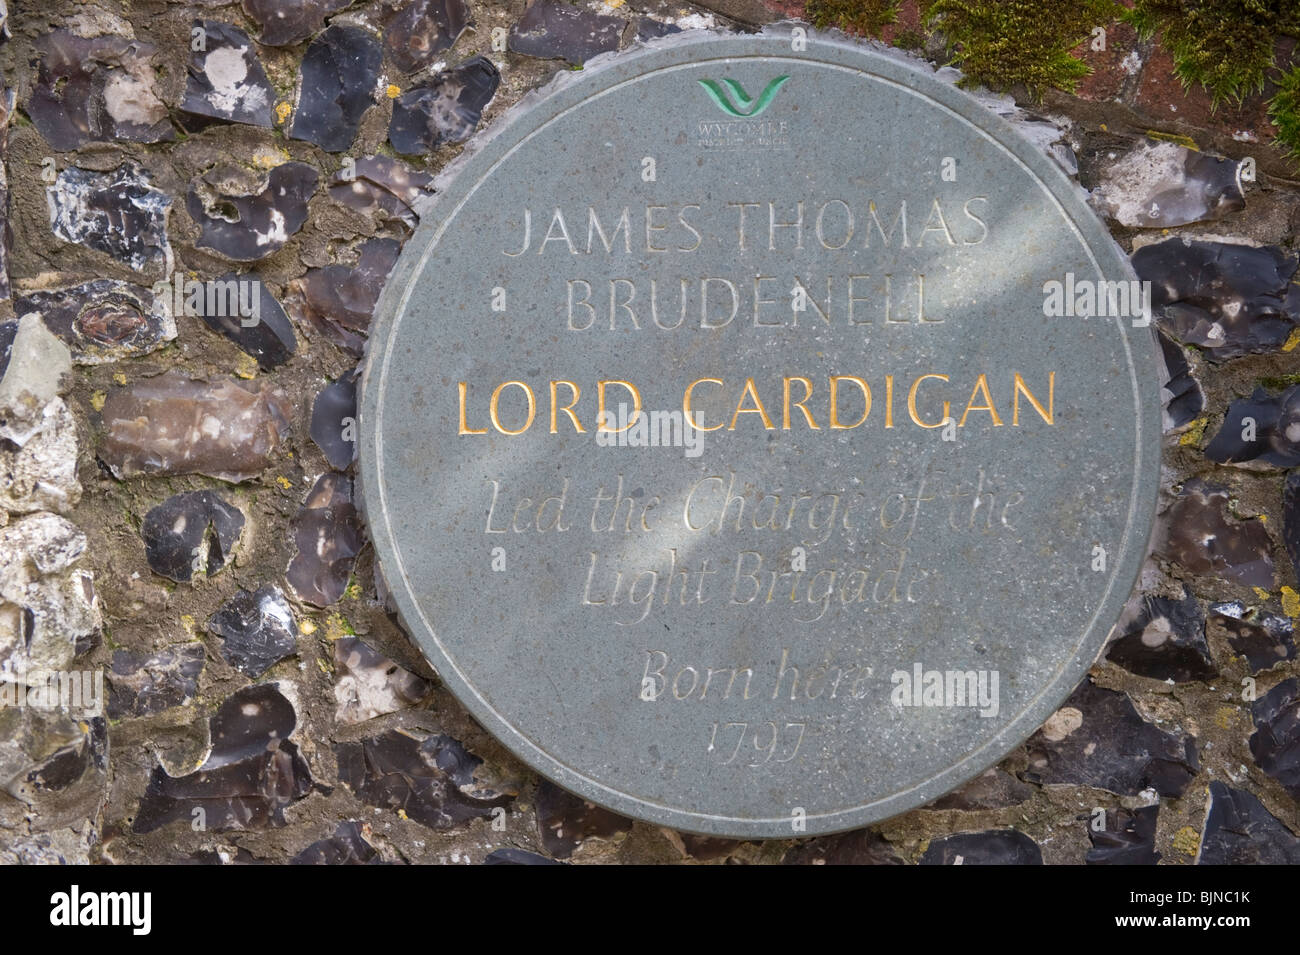 Lord Cardigan memorial wall plaque outside the Mansion at Hambleden Buckinghamshire UK - Stock Image